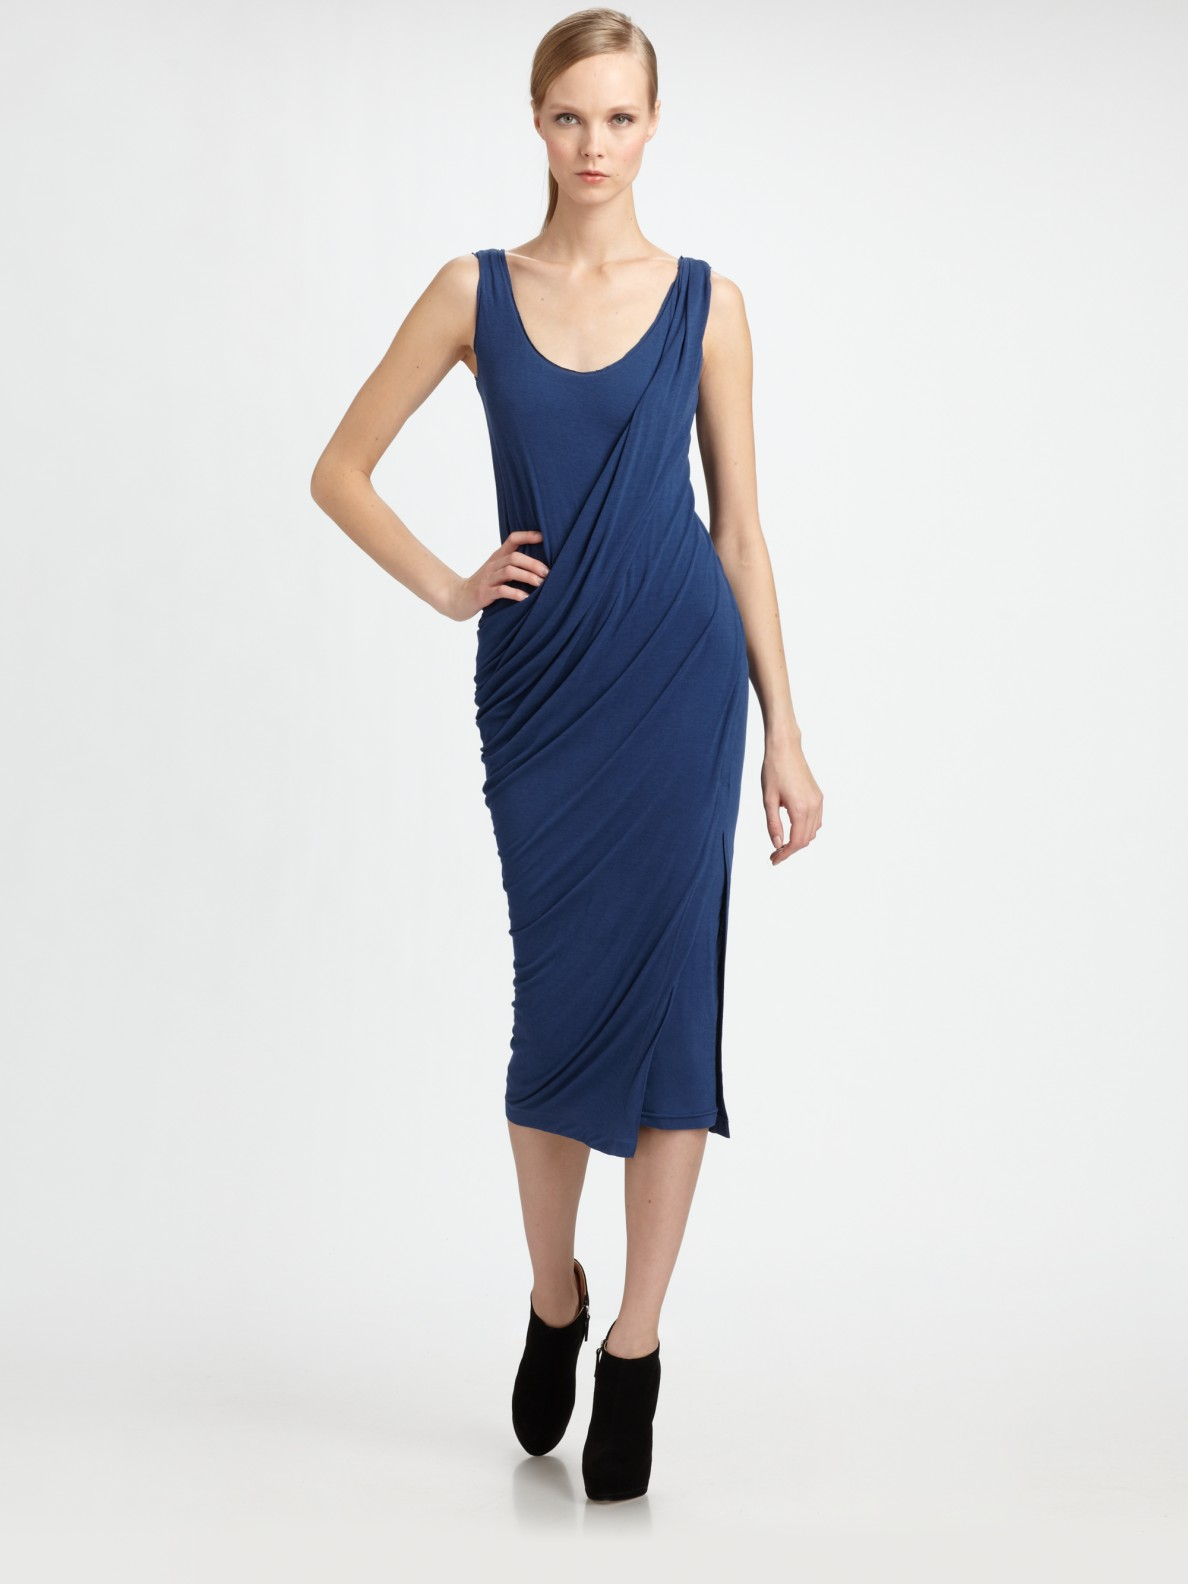 Donna karan new york draped jersey dress in blue black for Donna karen new york